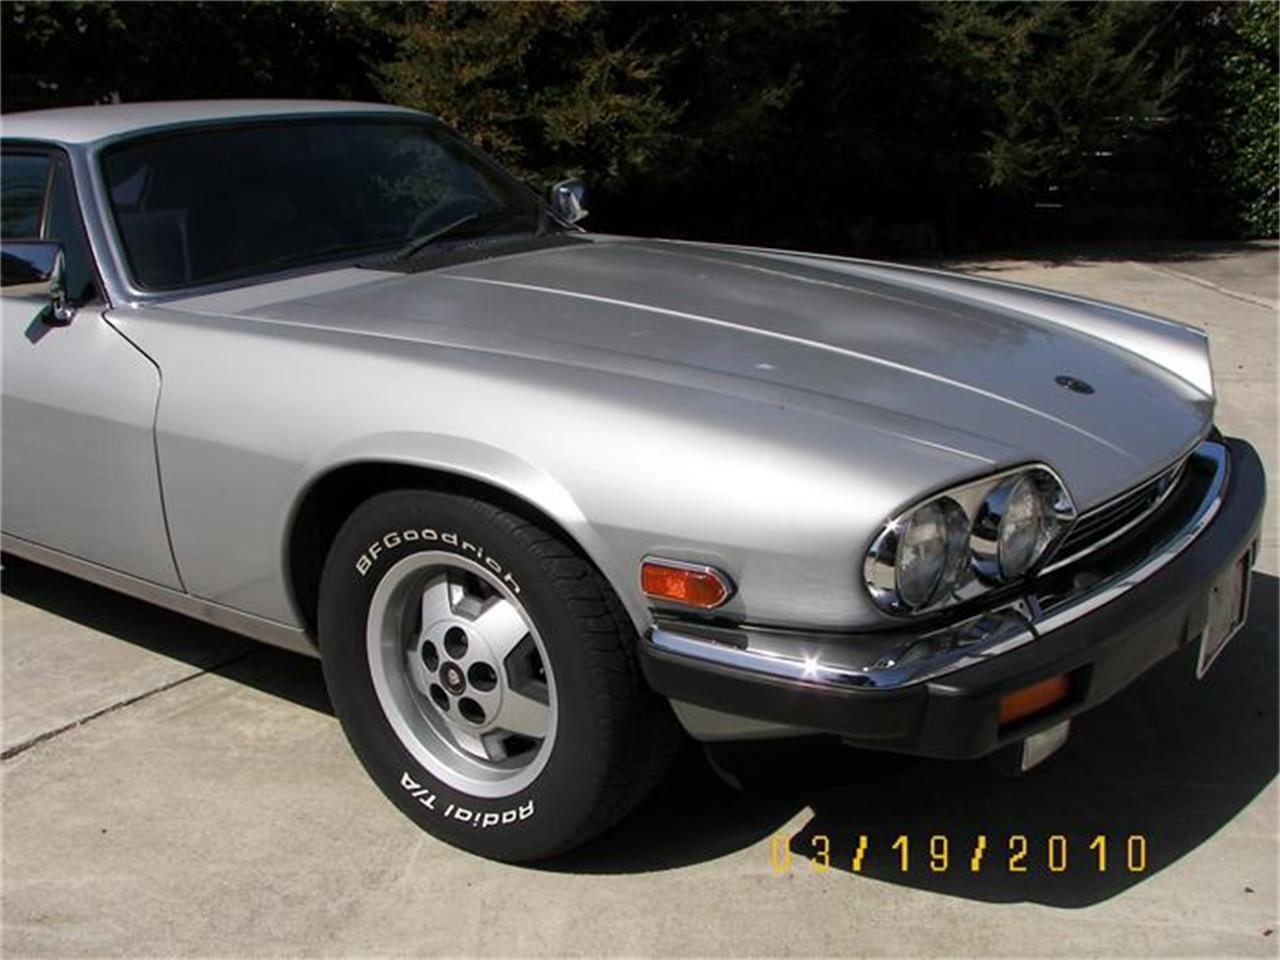 Large Picture of 1985 XJS located in Fremont California - $7,500.00 - 2YG4